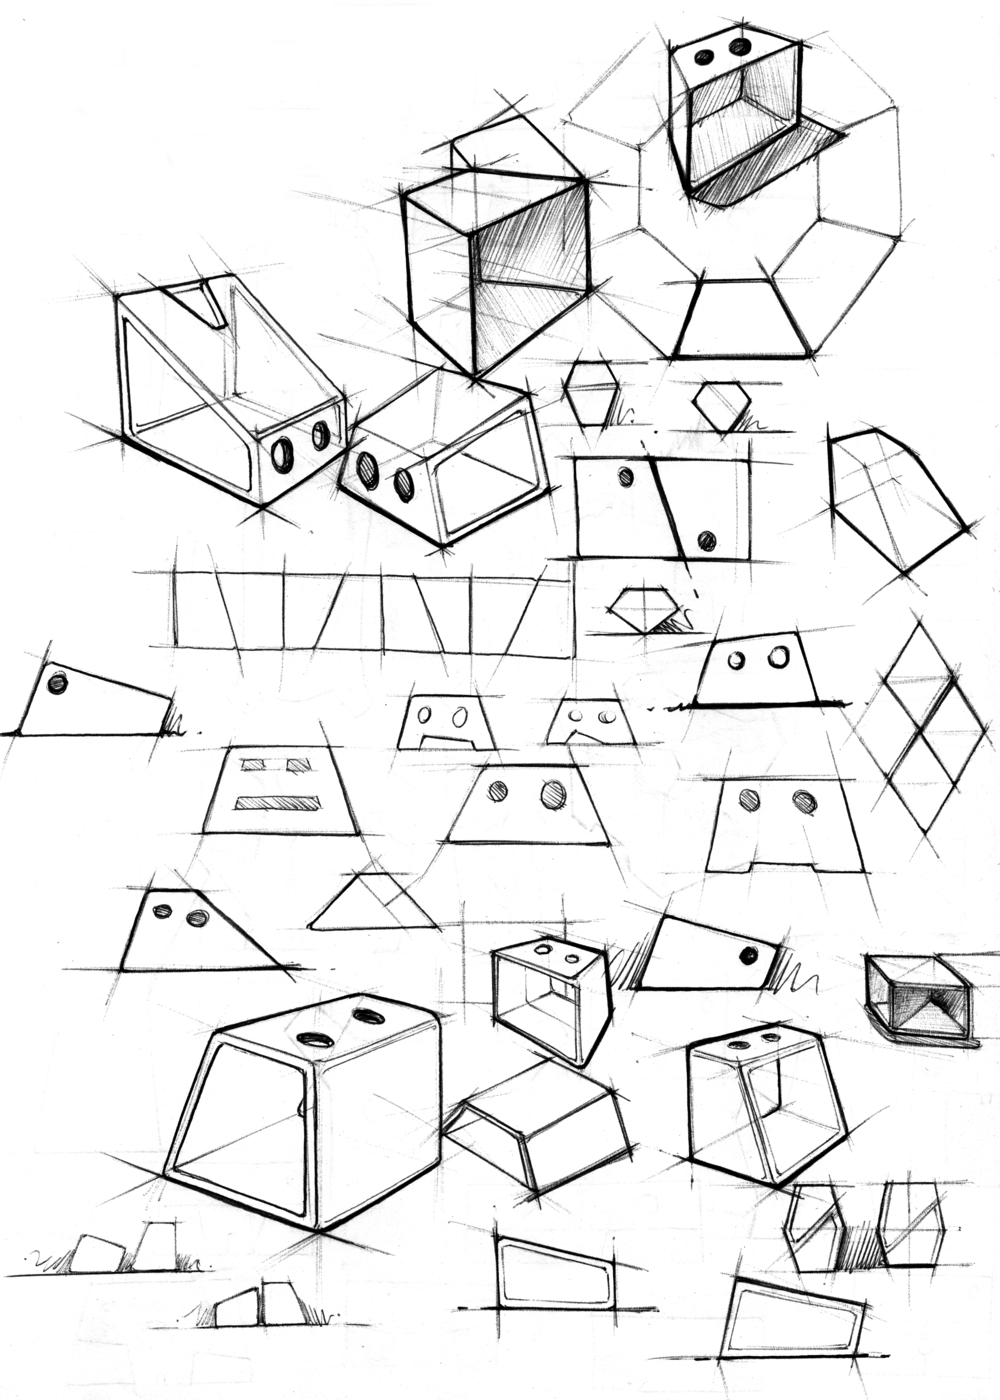 Modular_Libarary_Furniture_Sketches.jpg